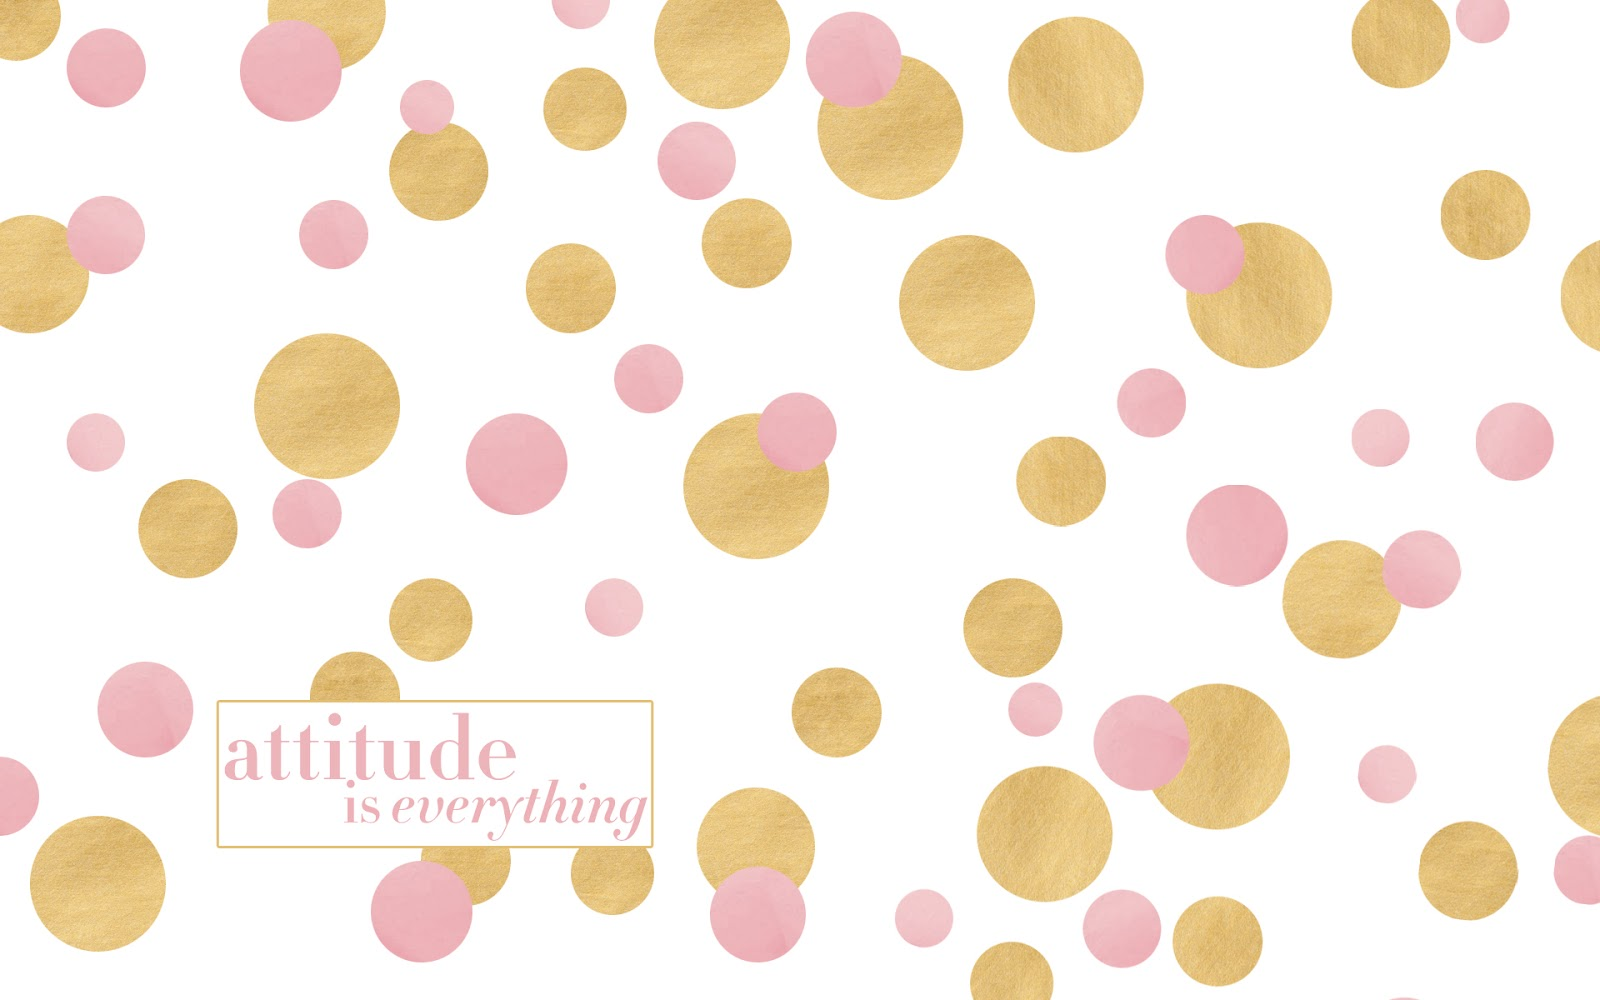 Stock Images Confetti Vector Illustration Multicolored White Background Image35969804 likewise Gold And Pink Metallic Wallpaper in addition Texture Background Wallpaper as well 6884359165 also Colorful Baroque Pattern. on gold sparkle background wallpaper